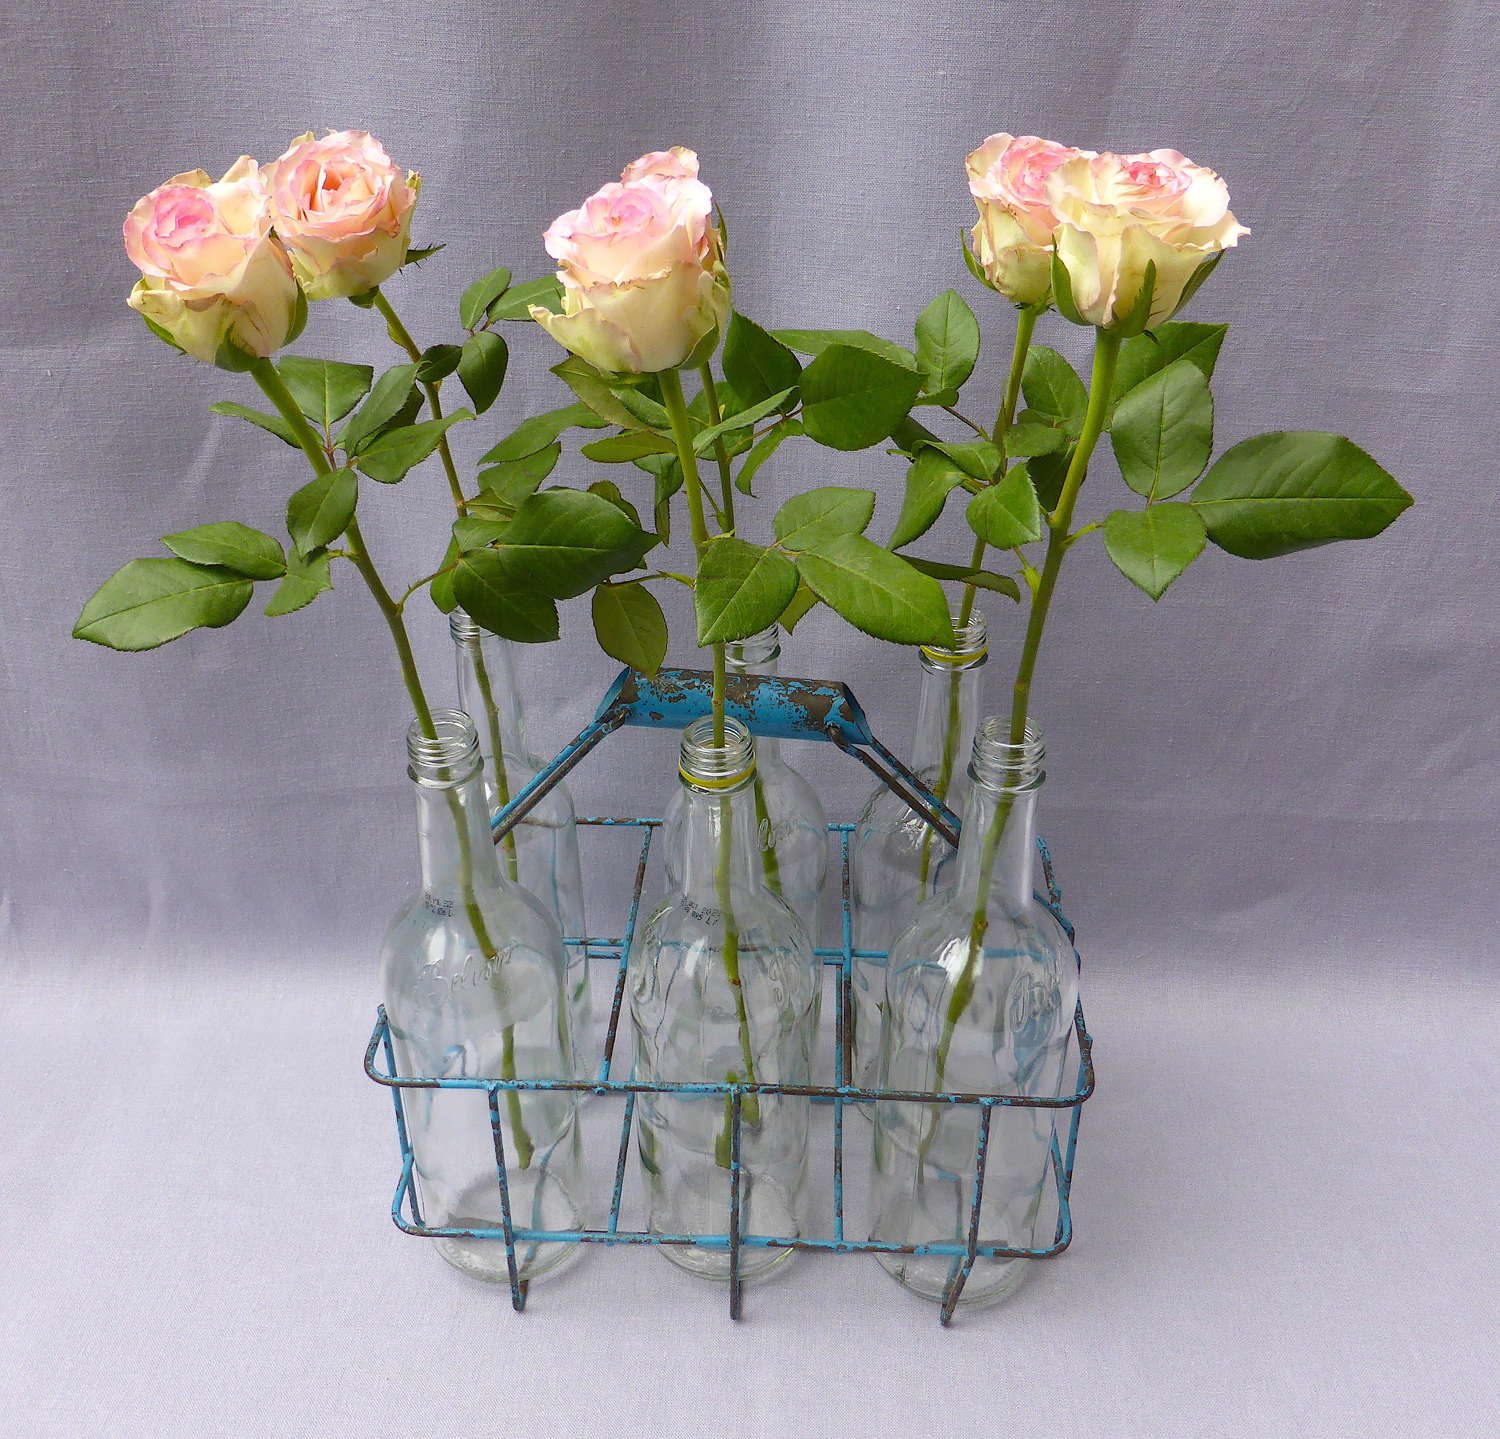 Vintage French Wire Bottle Carrier